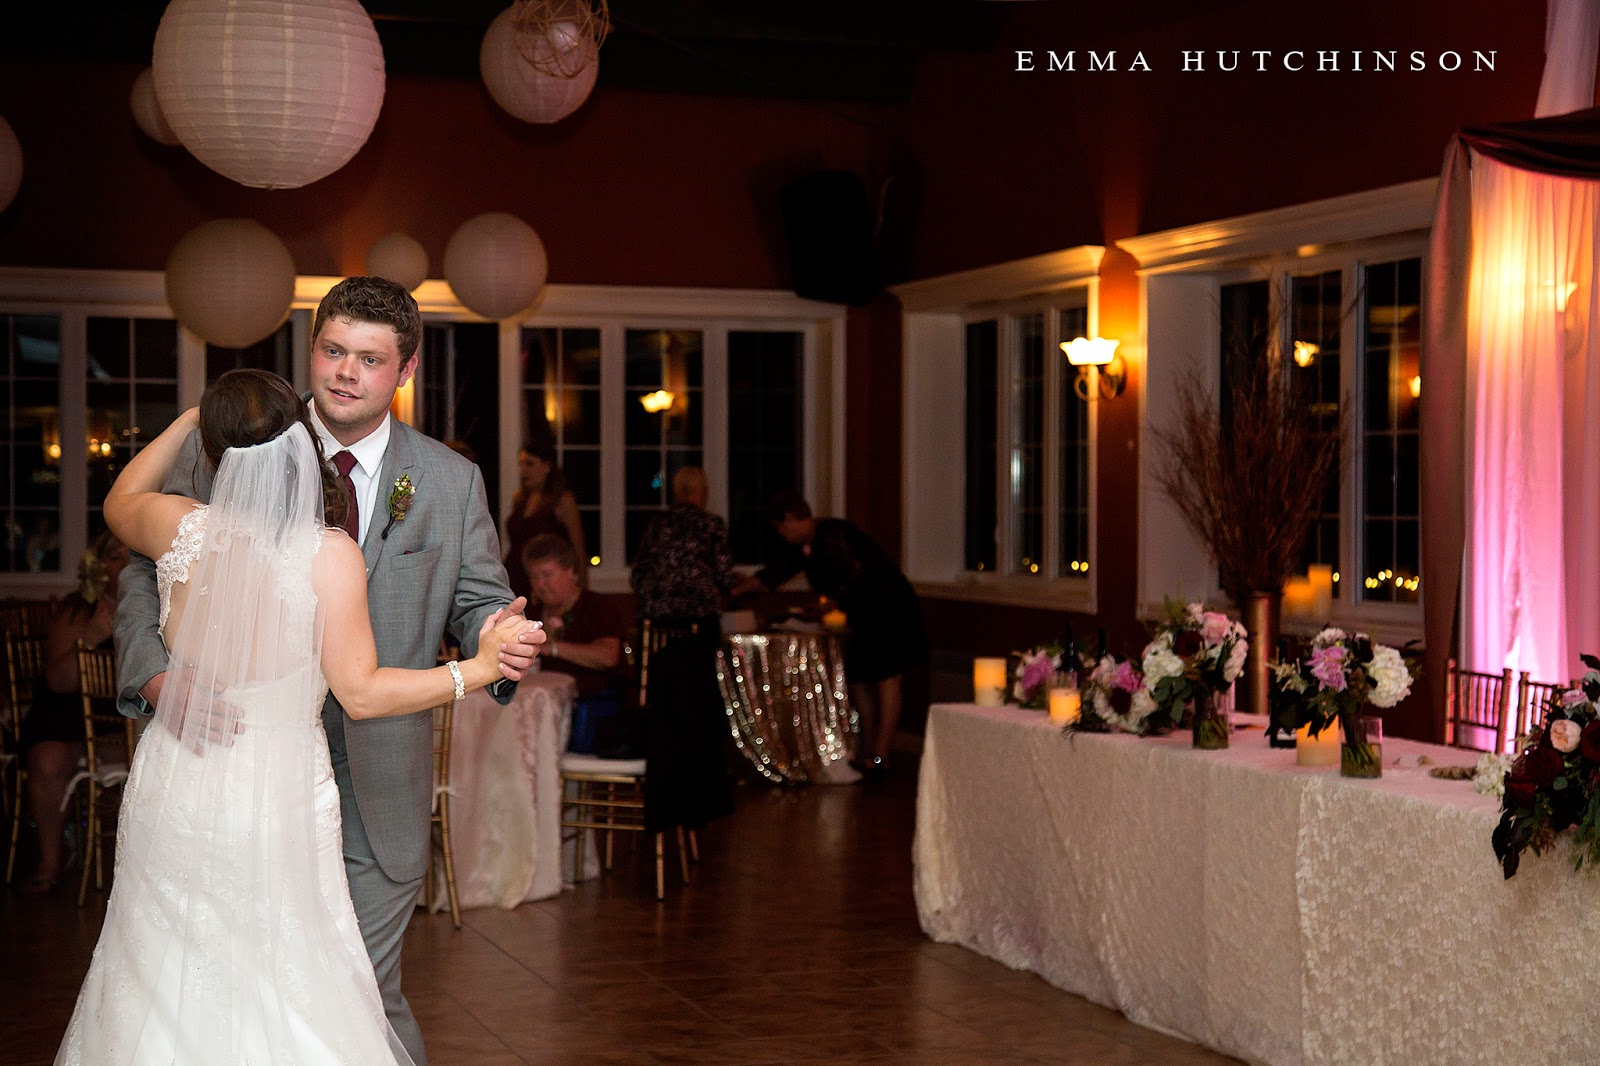 Weddings at the Grand Falls Golf Club - wedding photography by Emma Hutchinson